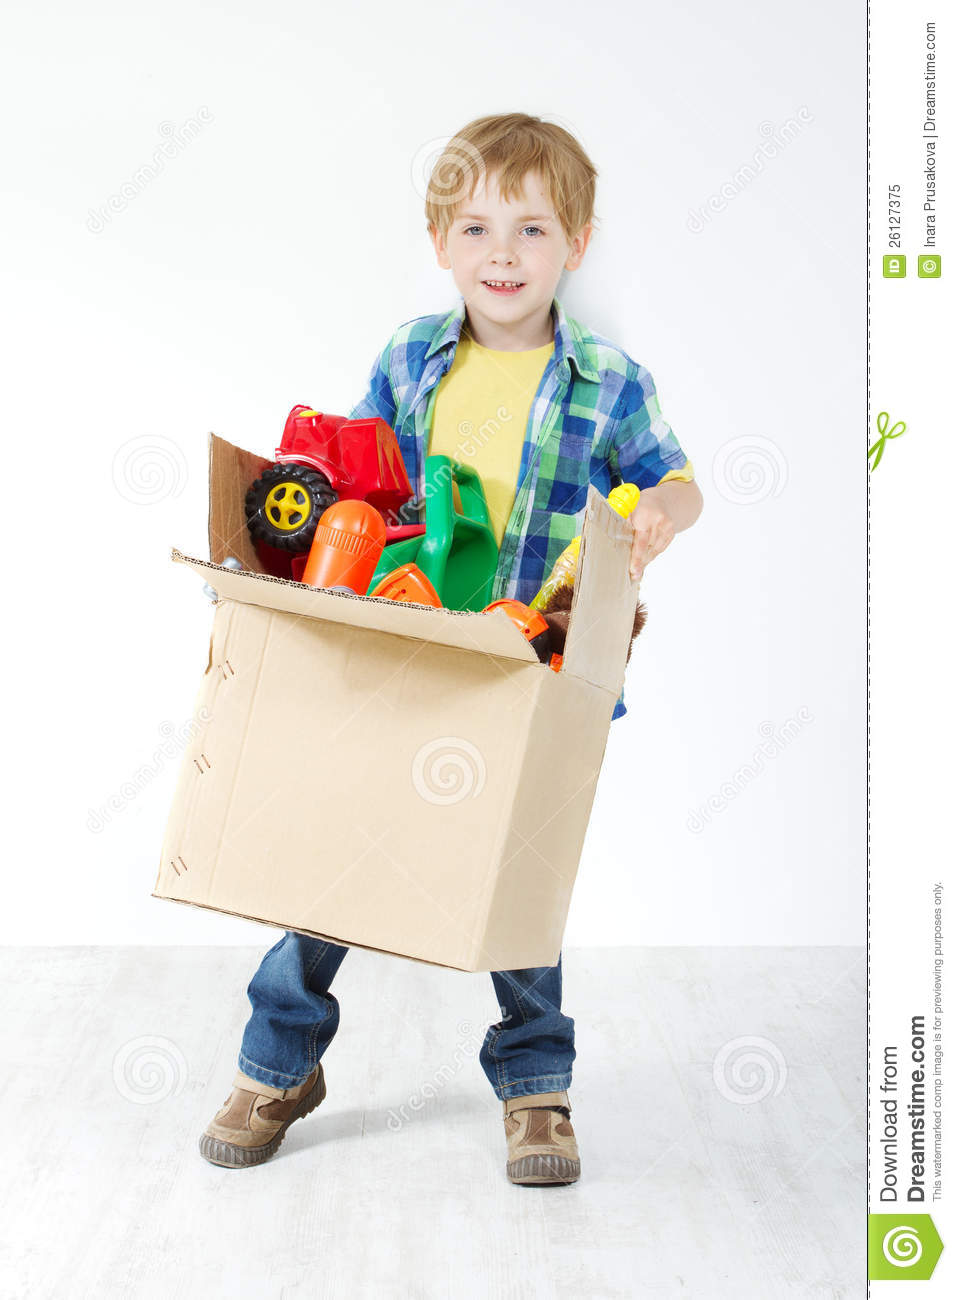 Child Holding Cardboard Box Packed With Toys Stock Image